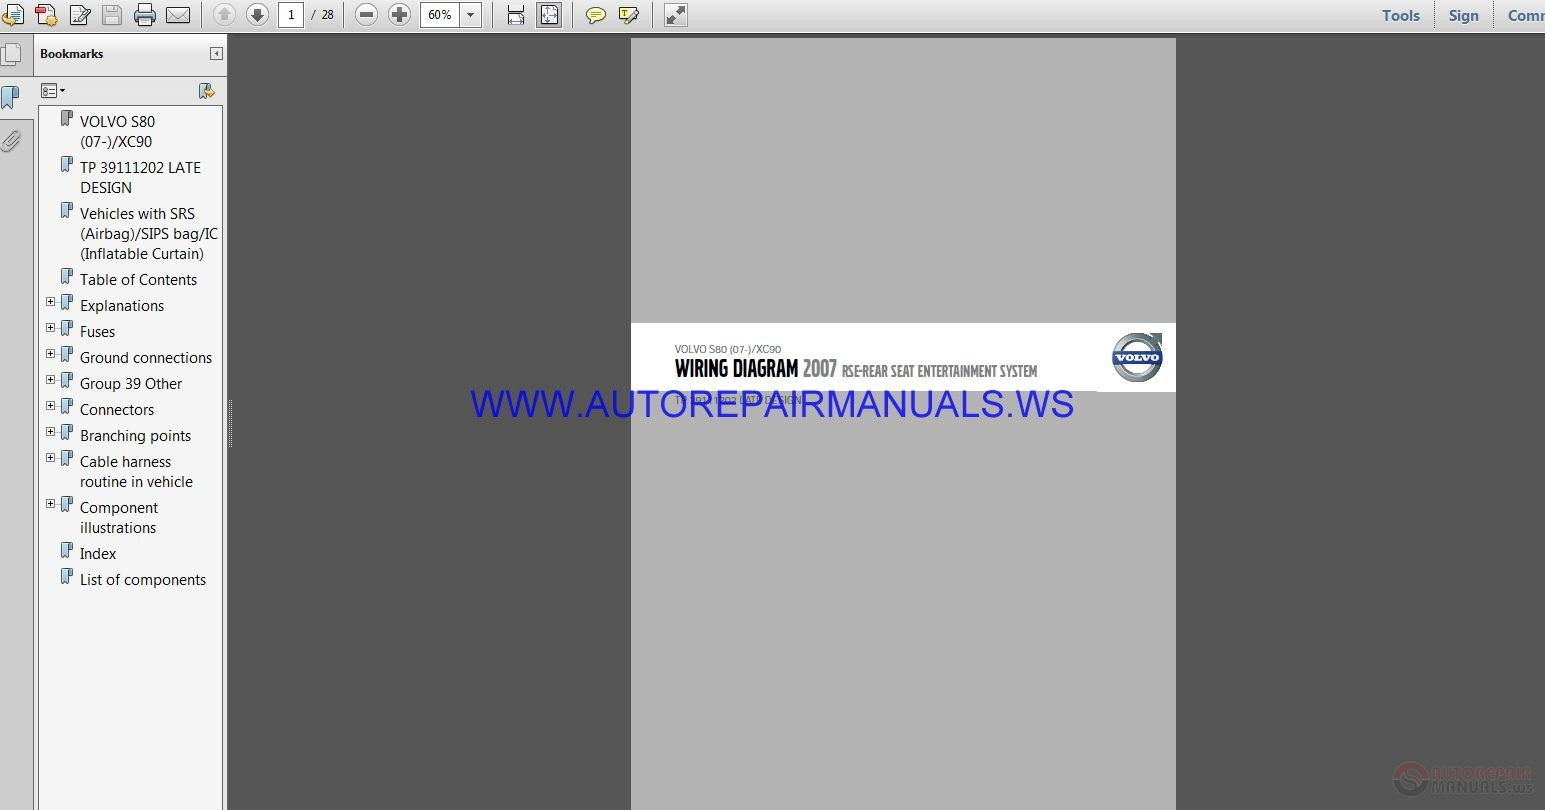 Volvo S80 Xc90 Tp39111202 Late Design Wiring Diagram